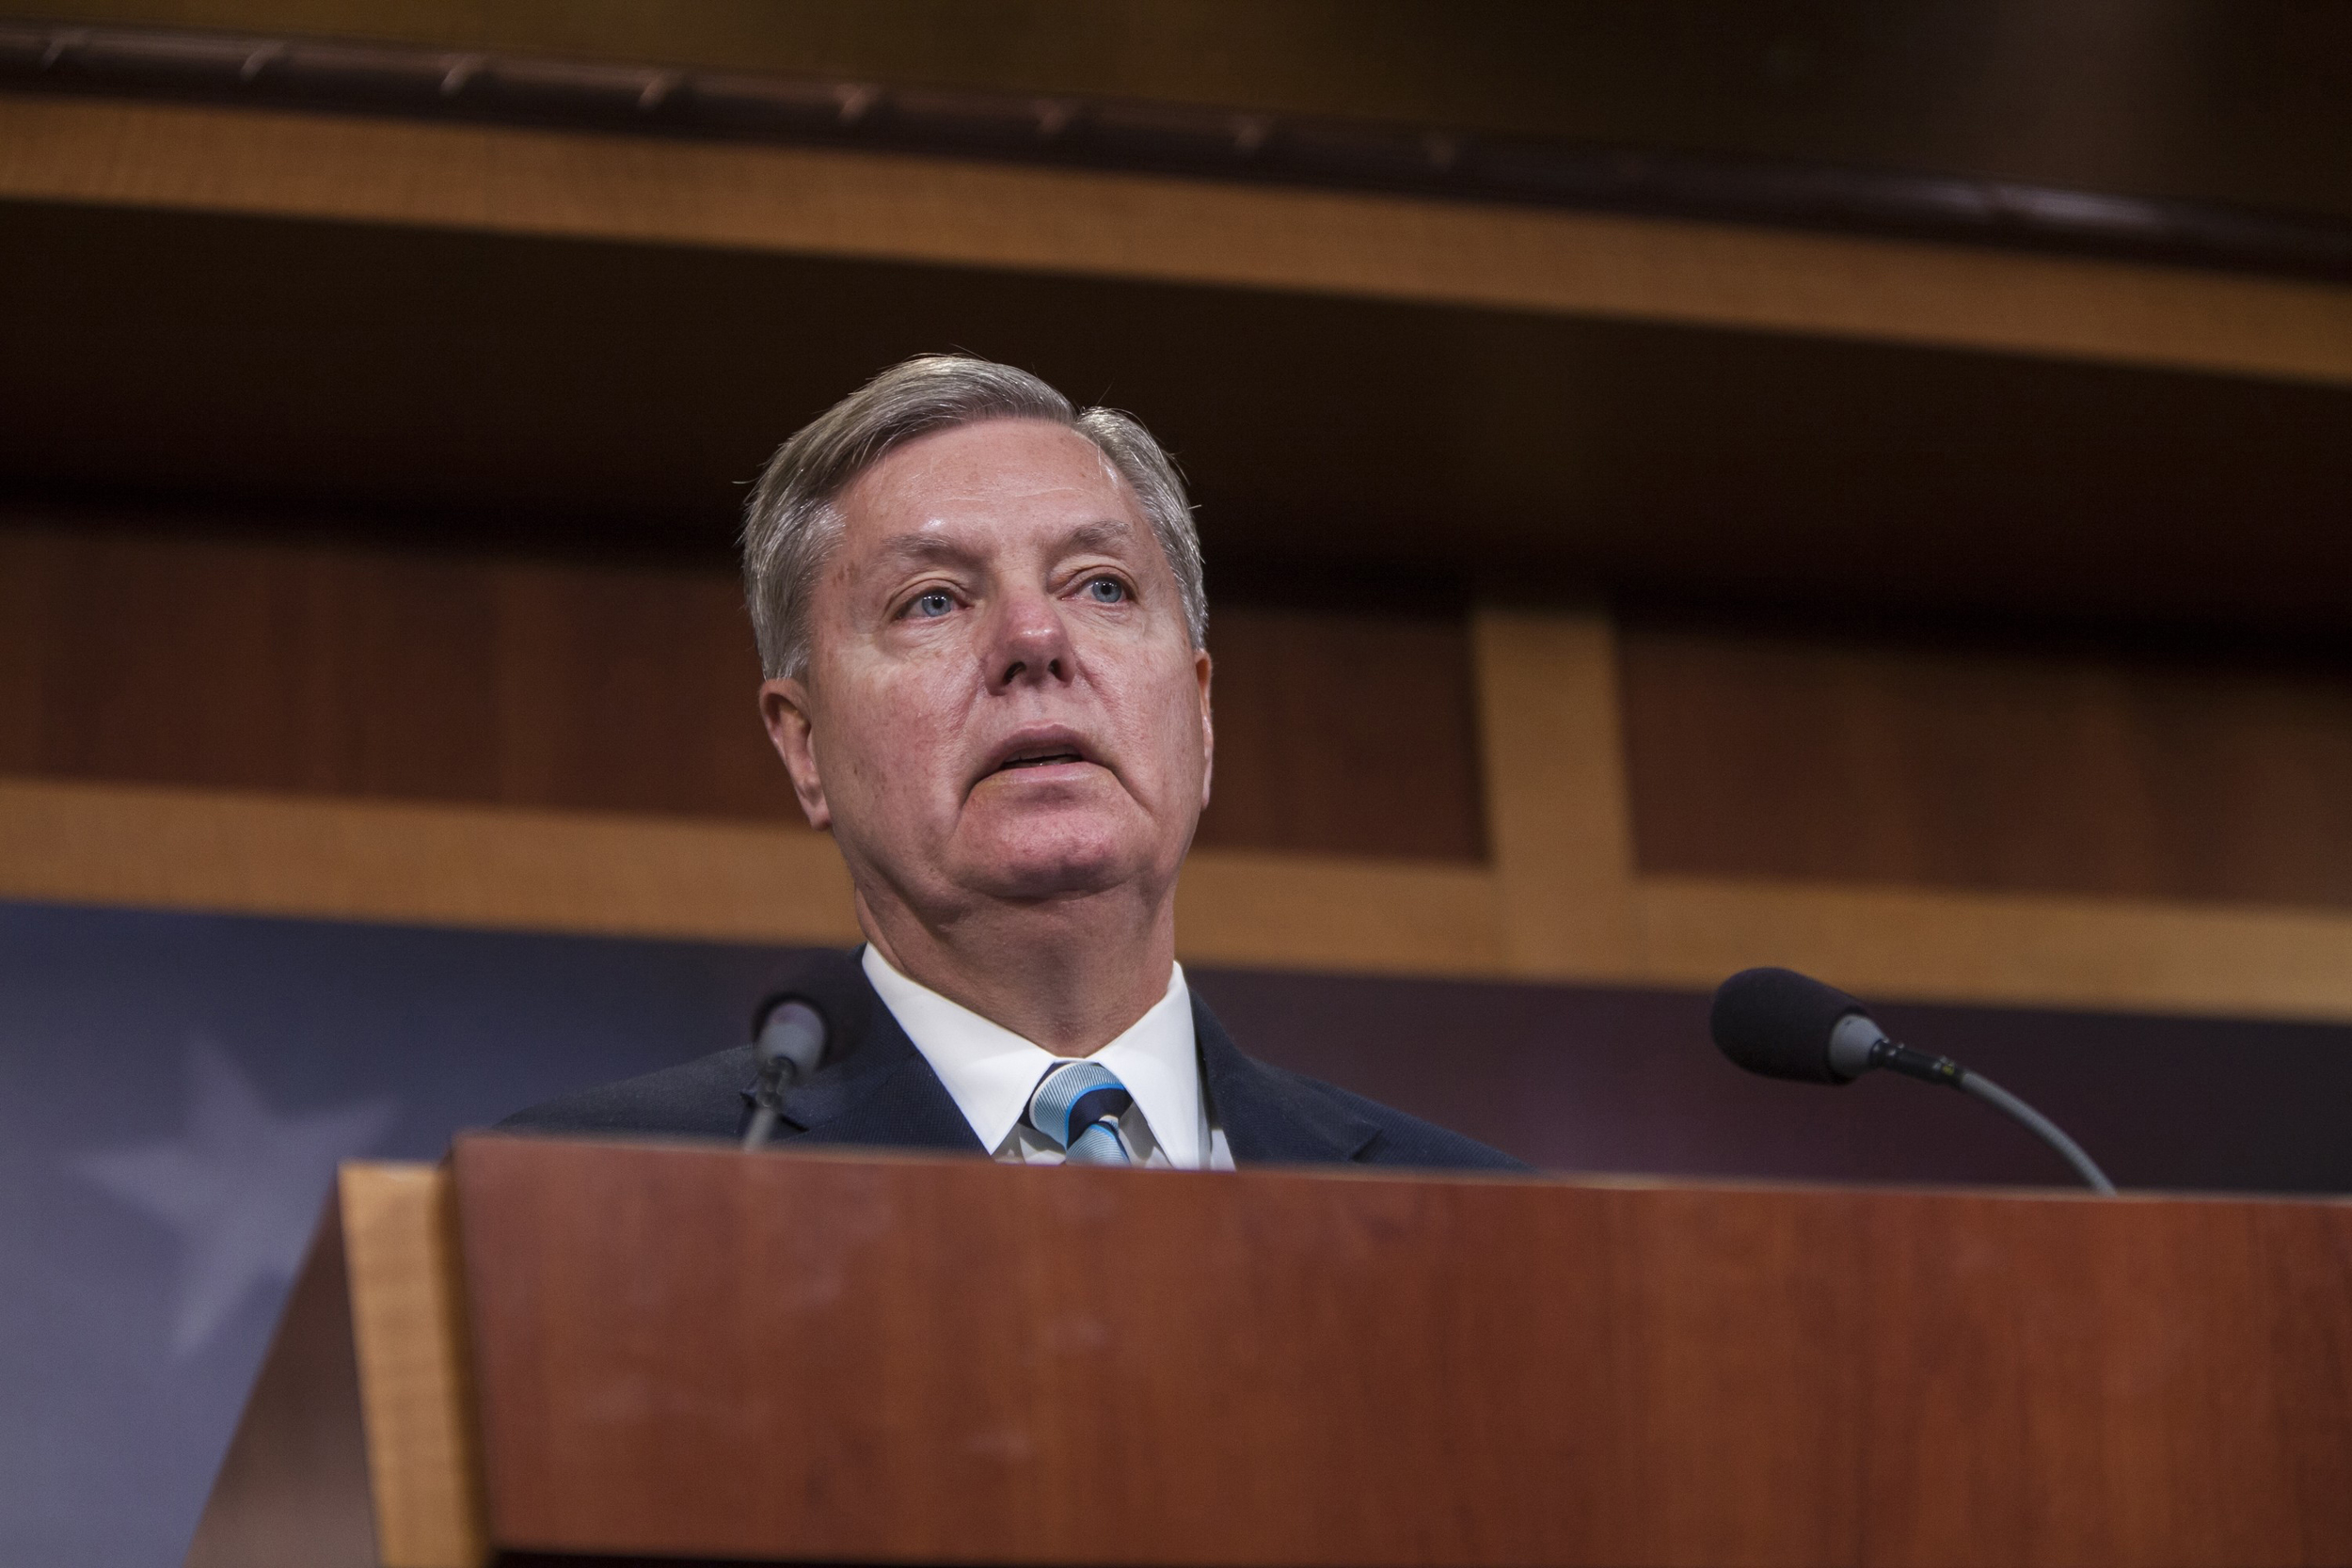 Senator Lindsey Graham speaks at a press conference in Washington on January 13, 2015.